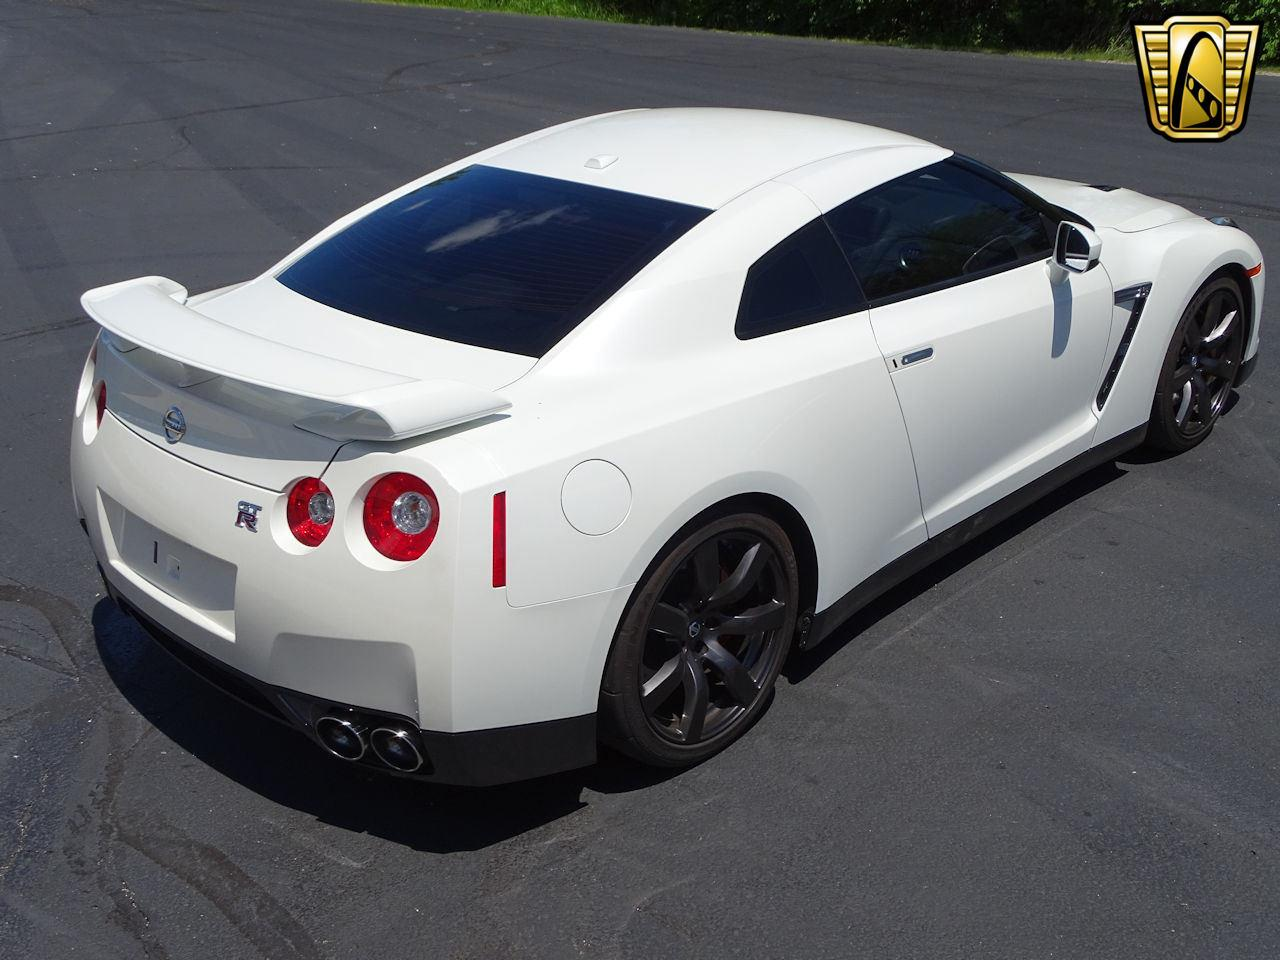 Large Picture of 2010 Nissan GT-R located in Indiana - L8WR